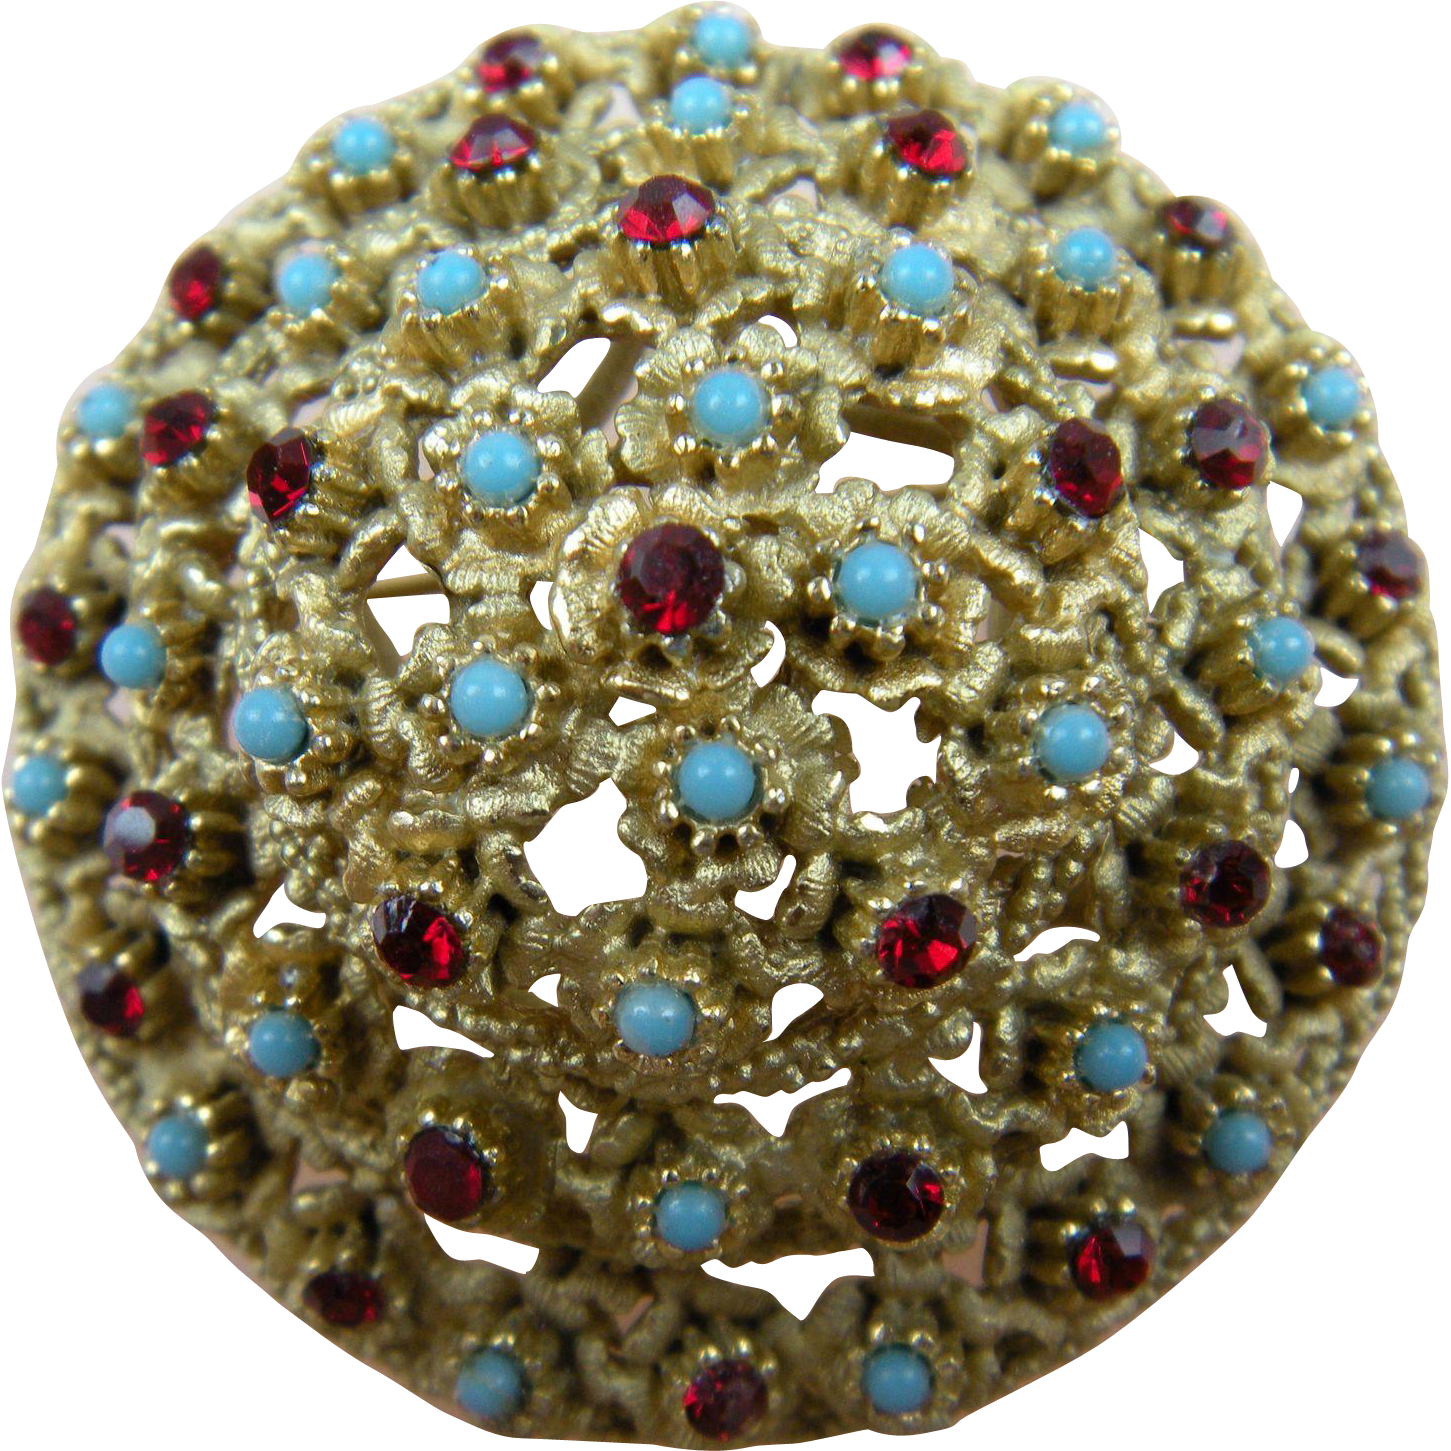 Domed brooch with Ruby Rhinestones and Imitation Turquoise Cabochons